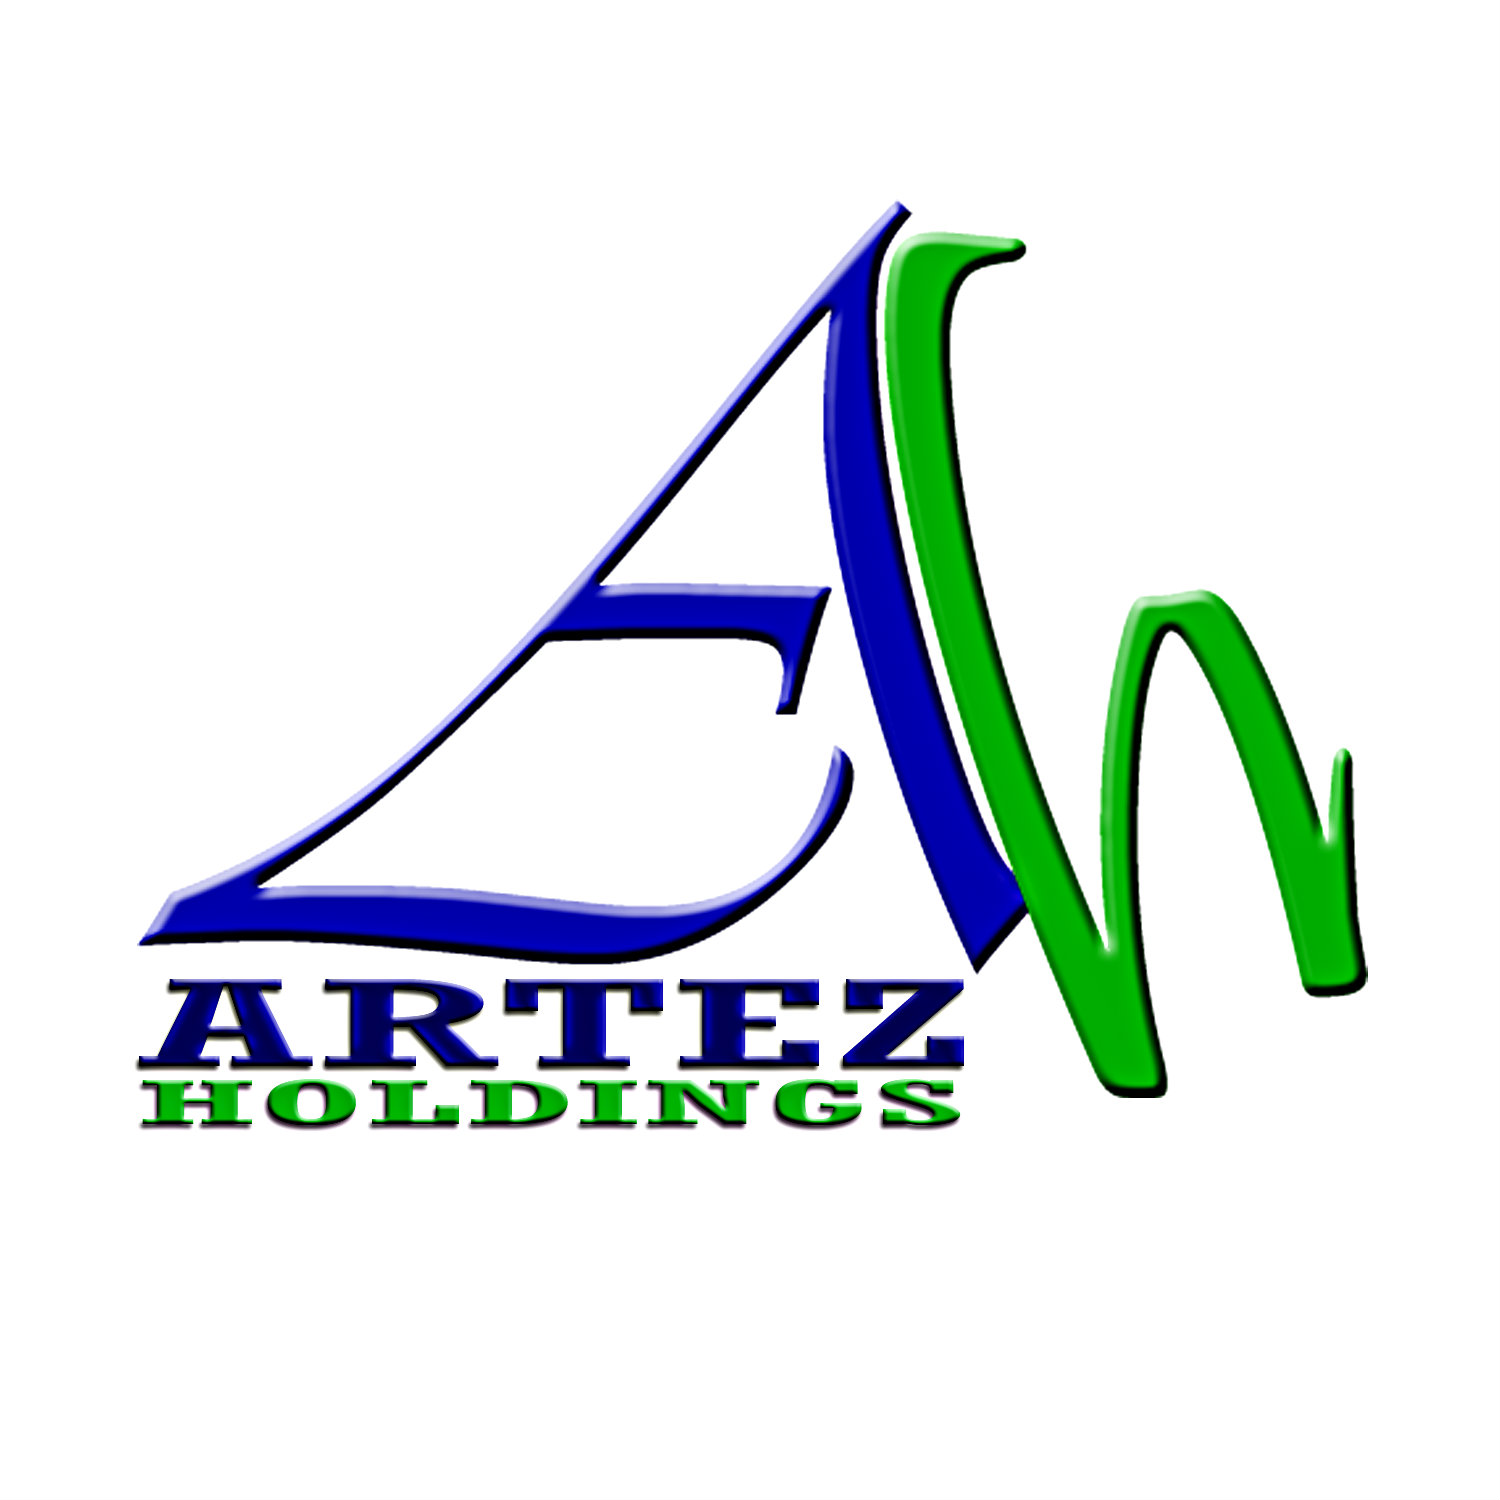 Logo Design by Elizalde Quintana - Entry No. 49 in the Logo Design Contest New Logo Design for Artez Holdings.